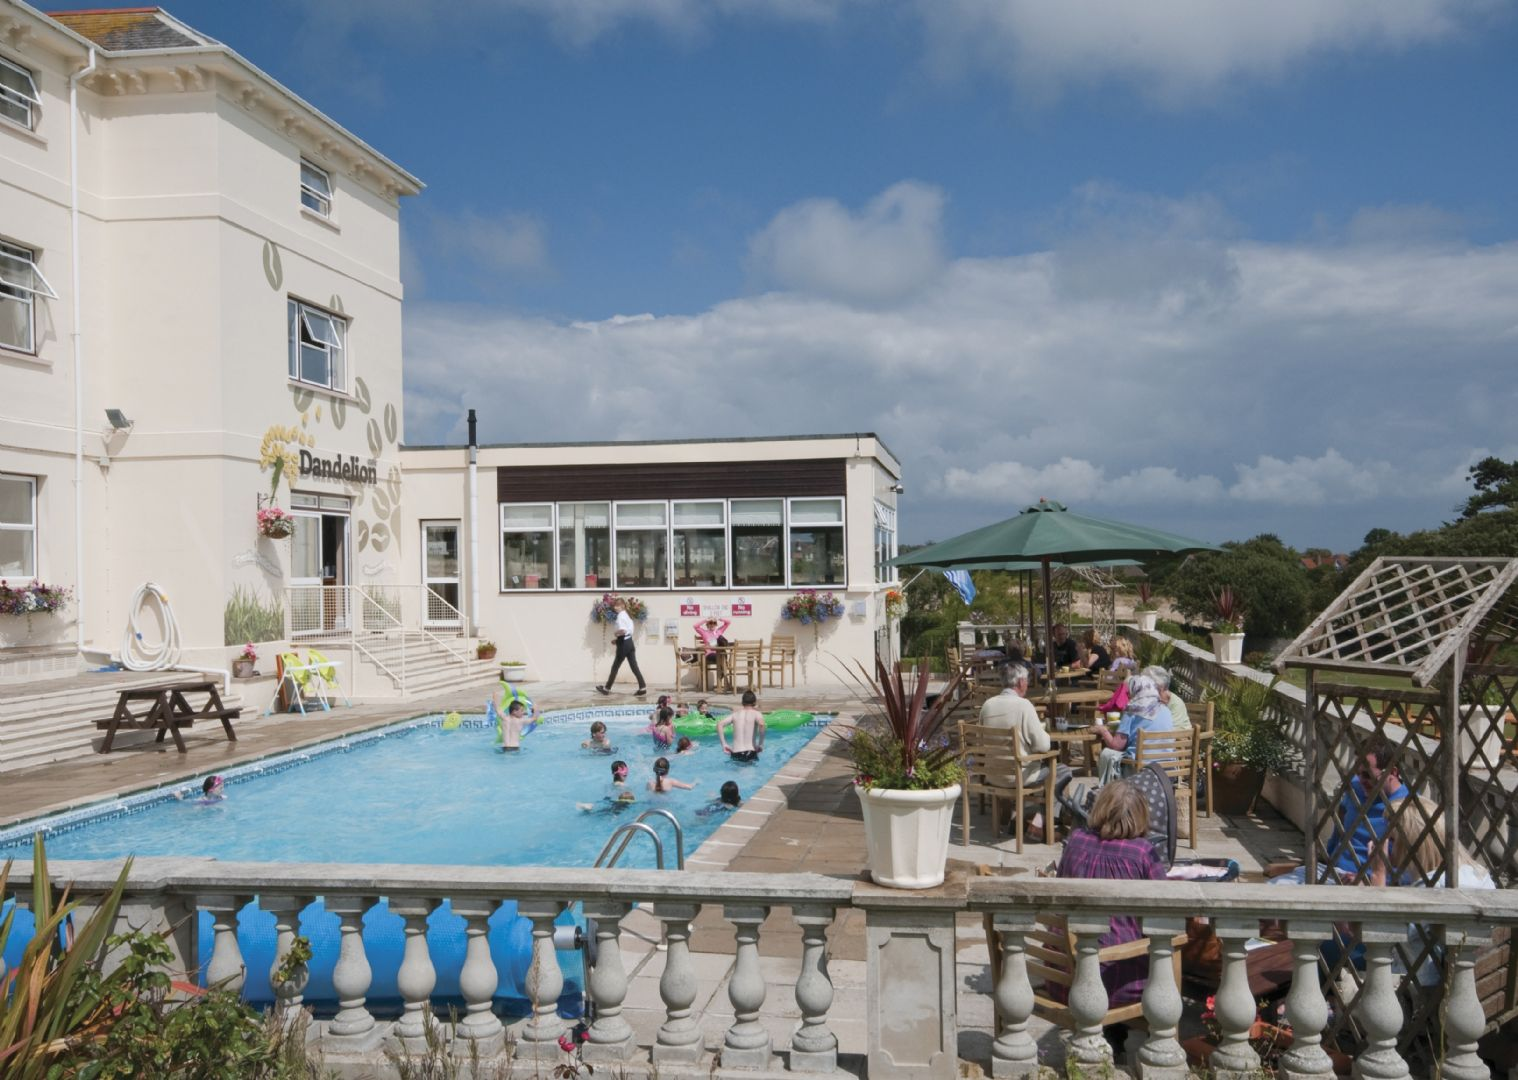 lesiure-cycling-holiday-uk-isleofwight-pool-view.jpg - UK - Isle of Wight - Freshwater Bay - Self-Guided Leisure Cycling Holiday - Leisure Cycling